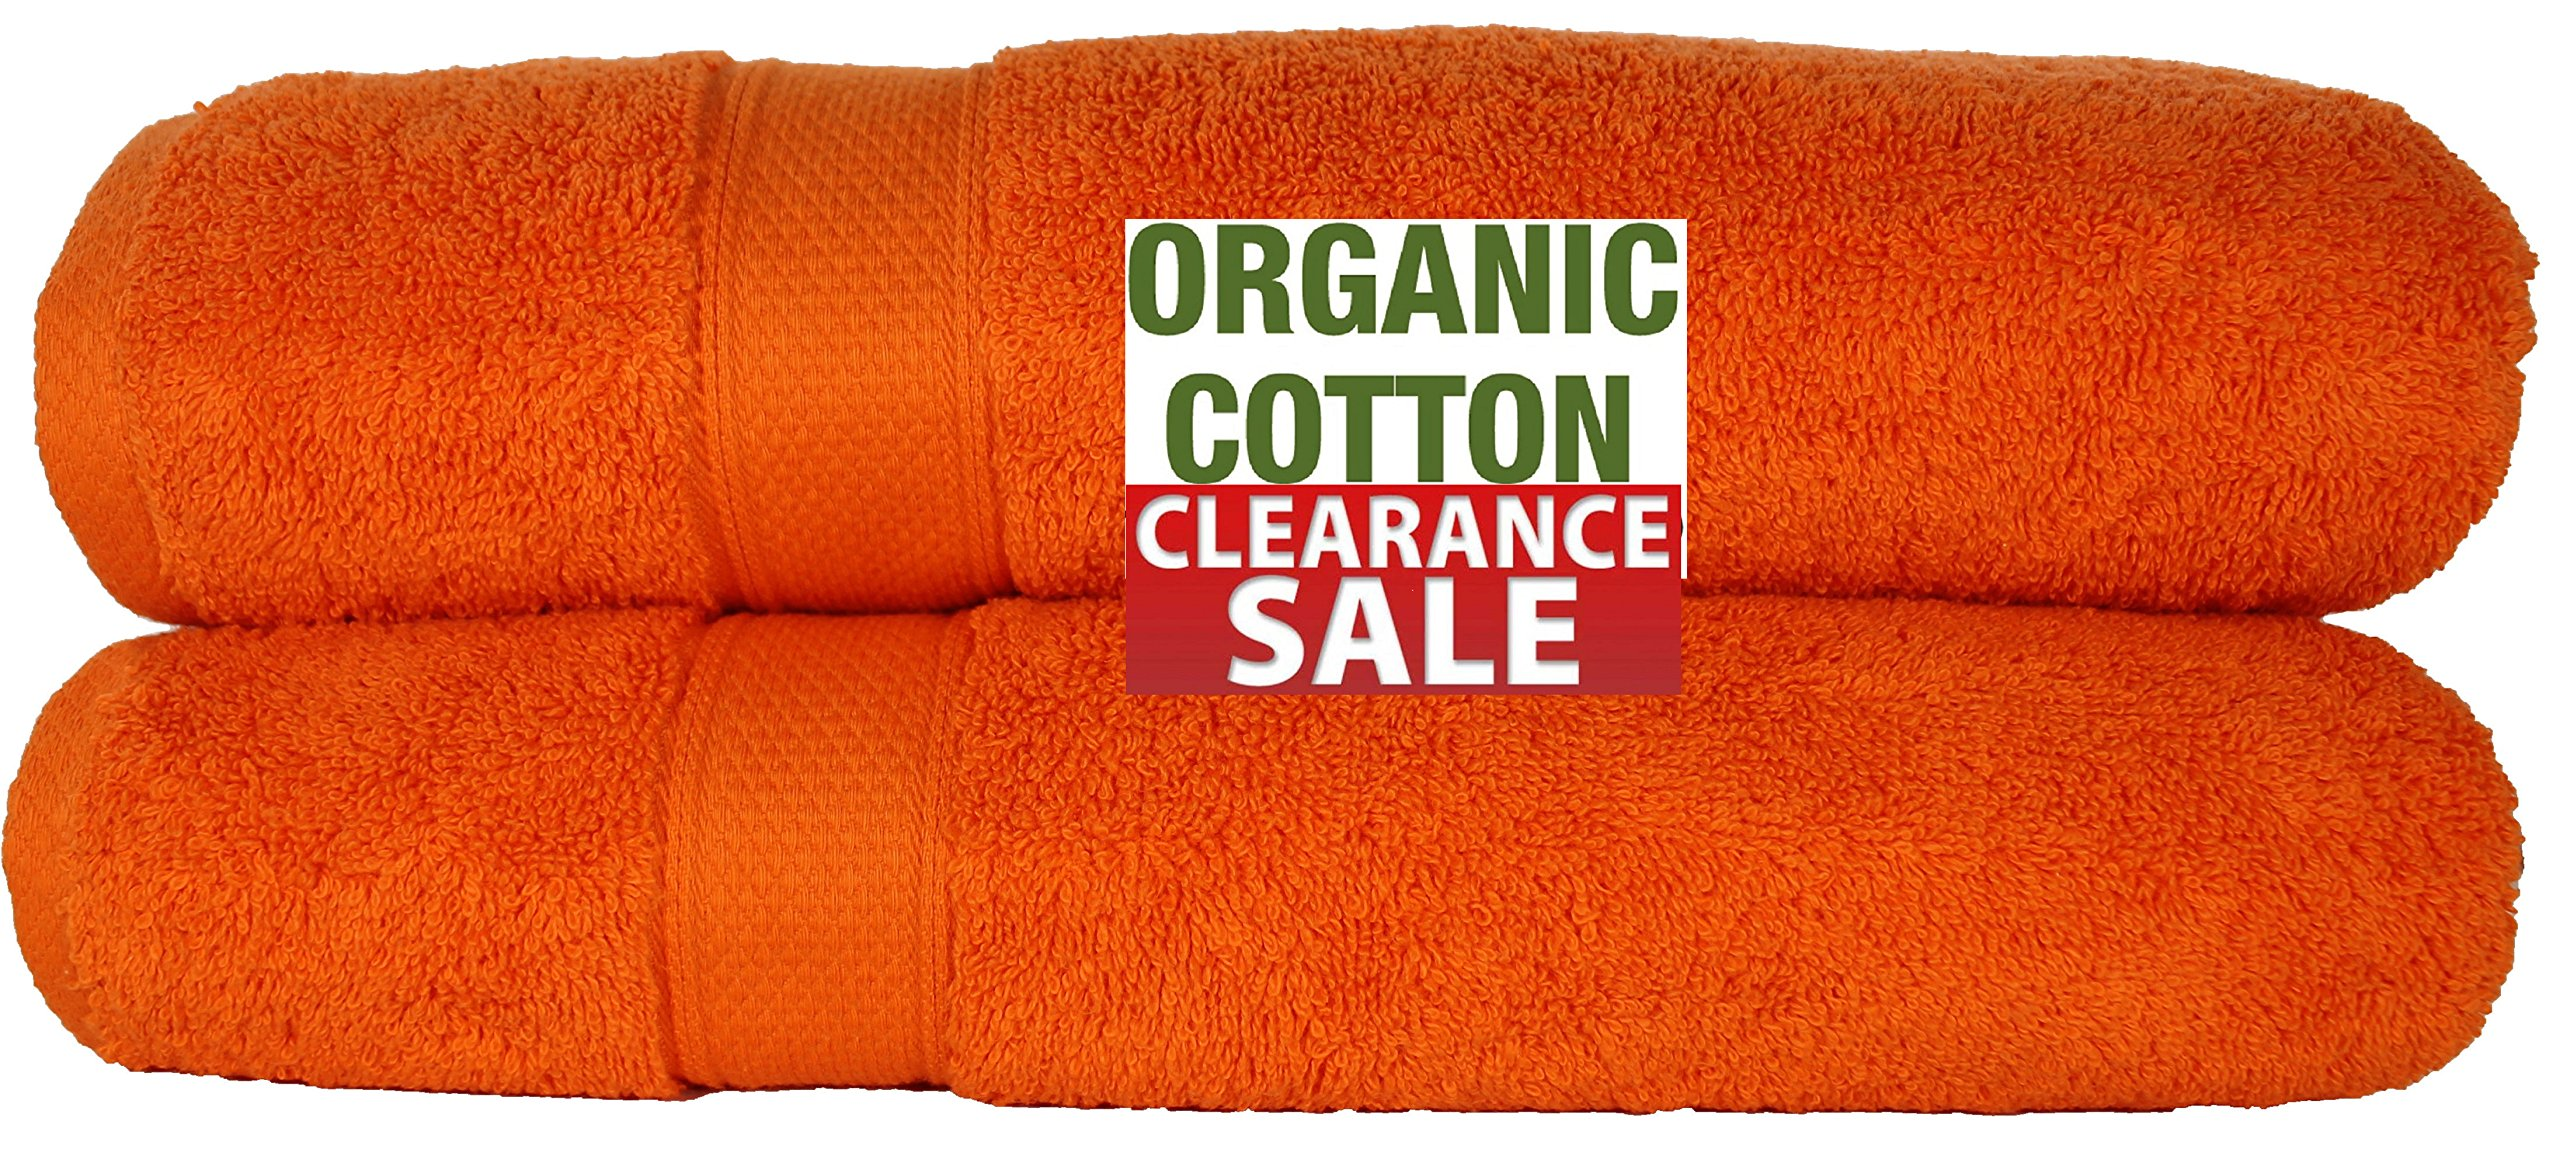 100 % Organic Turkish cotton, Antibacterial Premium Quality, Turkish Towels Super Soft, Plush Highly Absorbency,Everyday Use Quick dry.Long lasting 35 x 70-Inch (Bath Sheet- Set of 2 Tangerine Orange) by Aspendos Linen